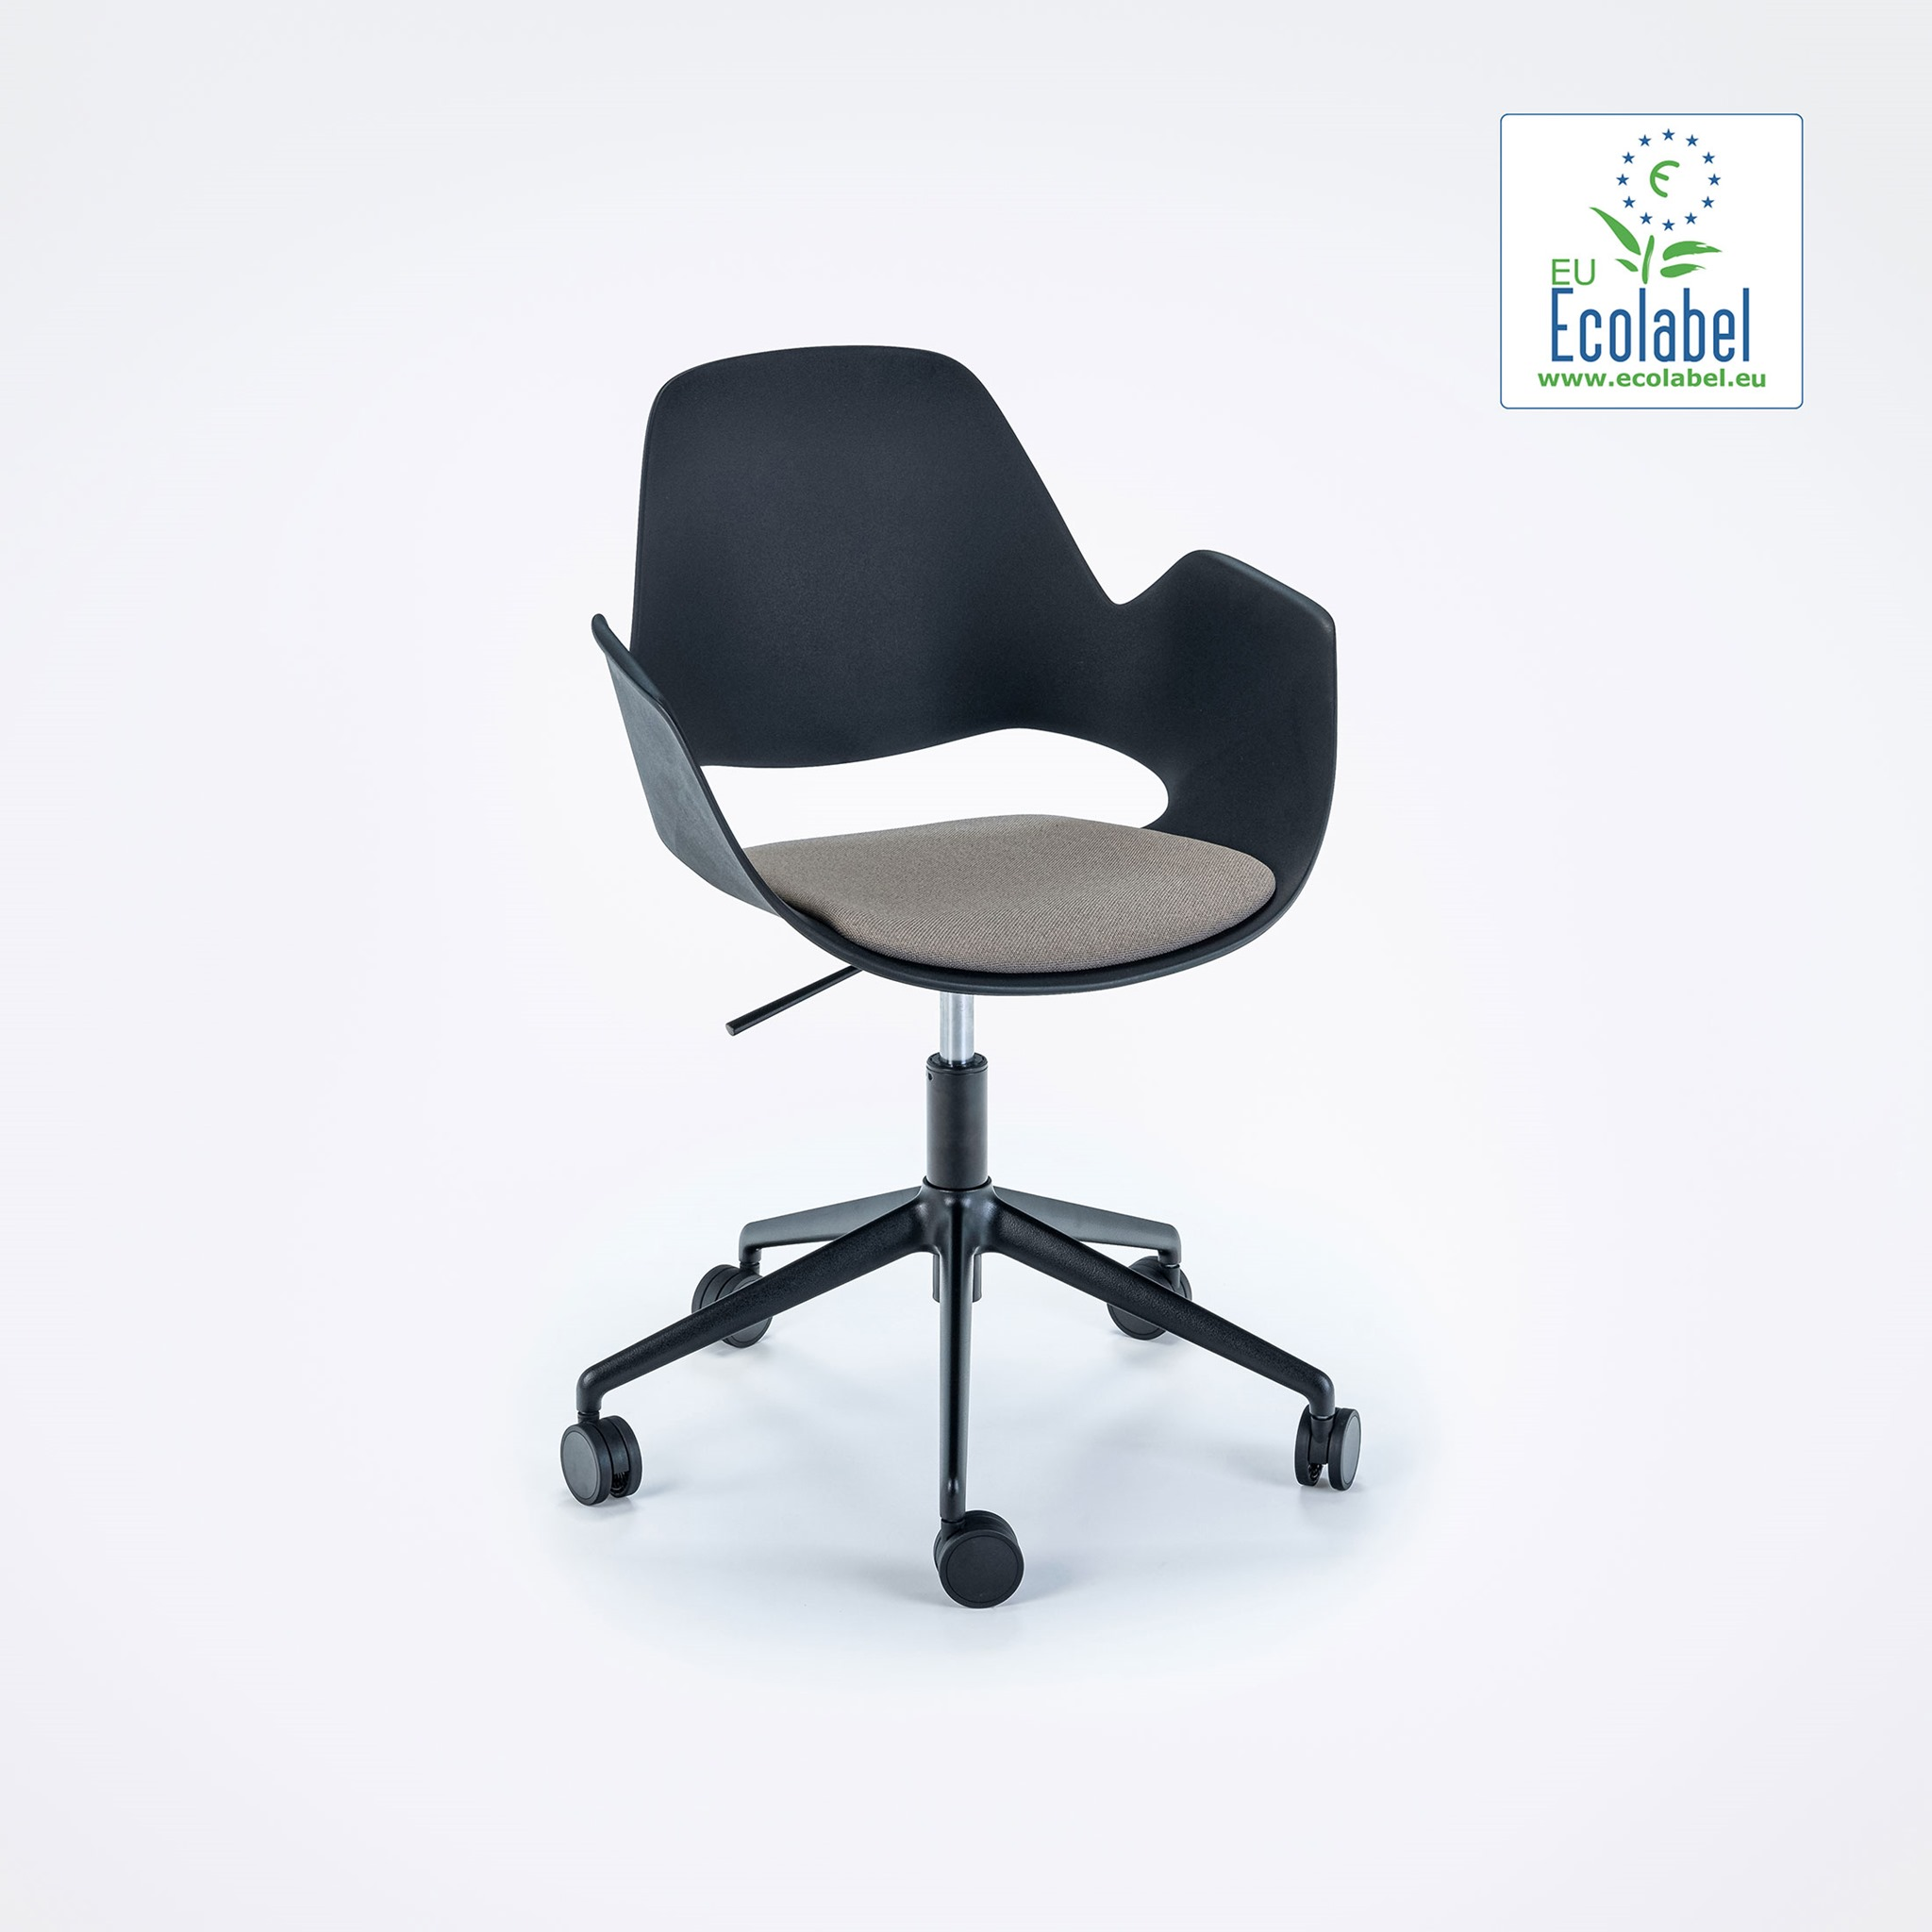 DINING ARMCHAIR // PADDED SEAT // Beige // castors // 5 star swivel base